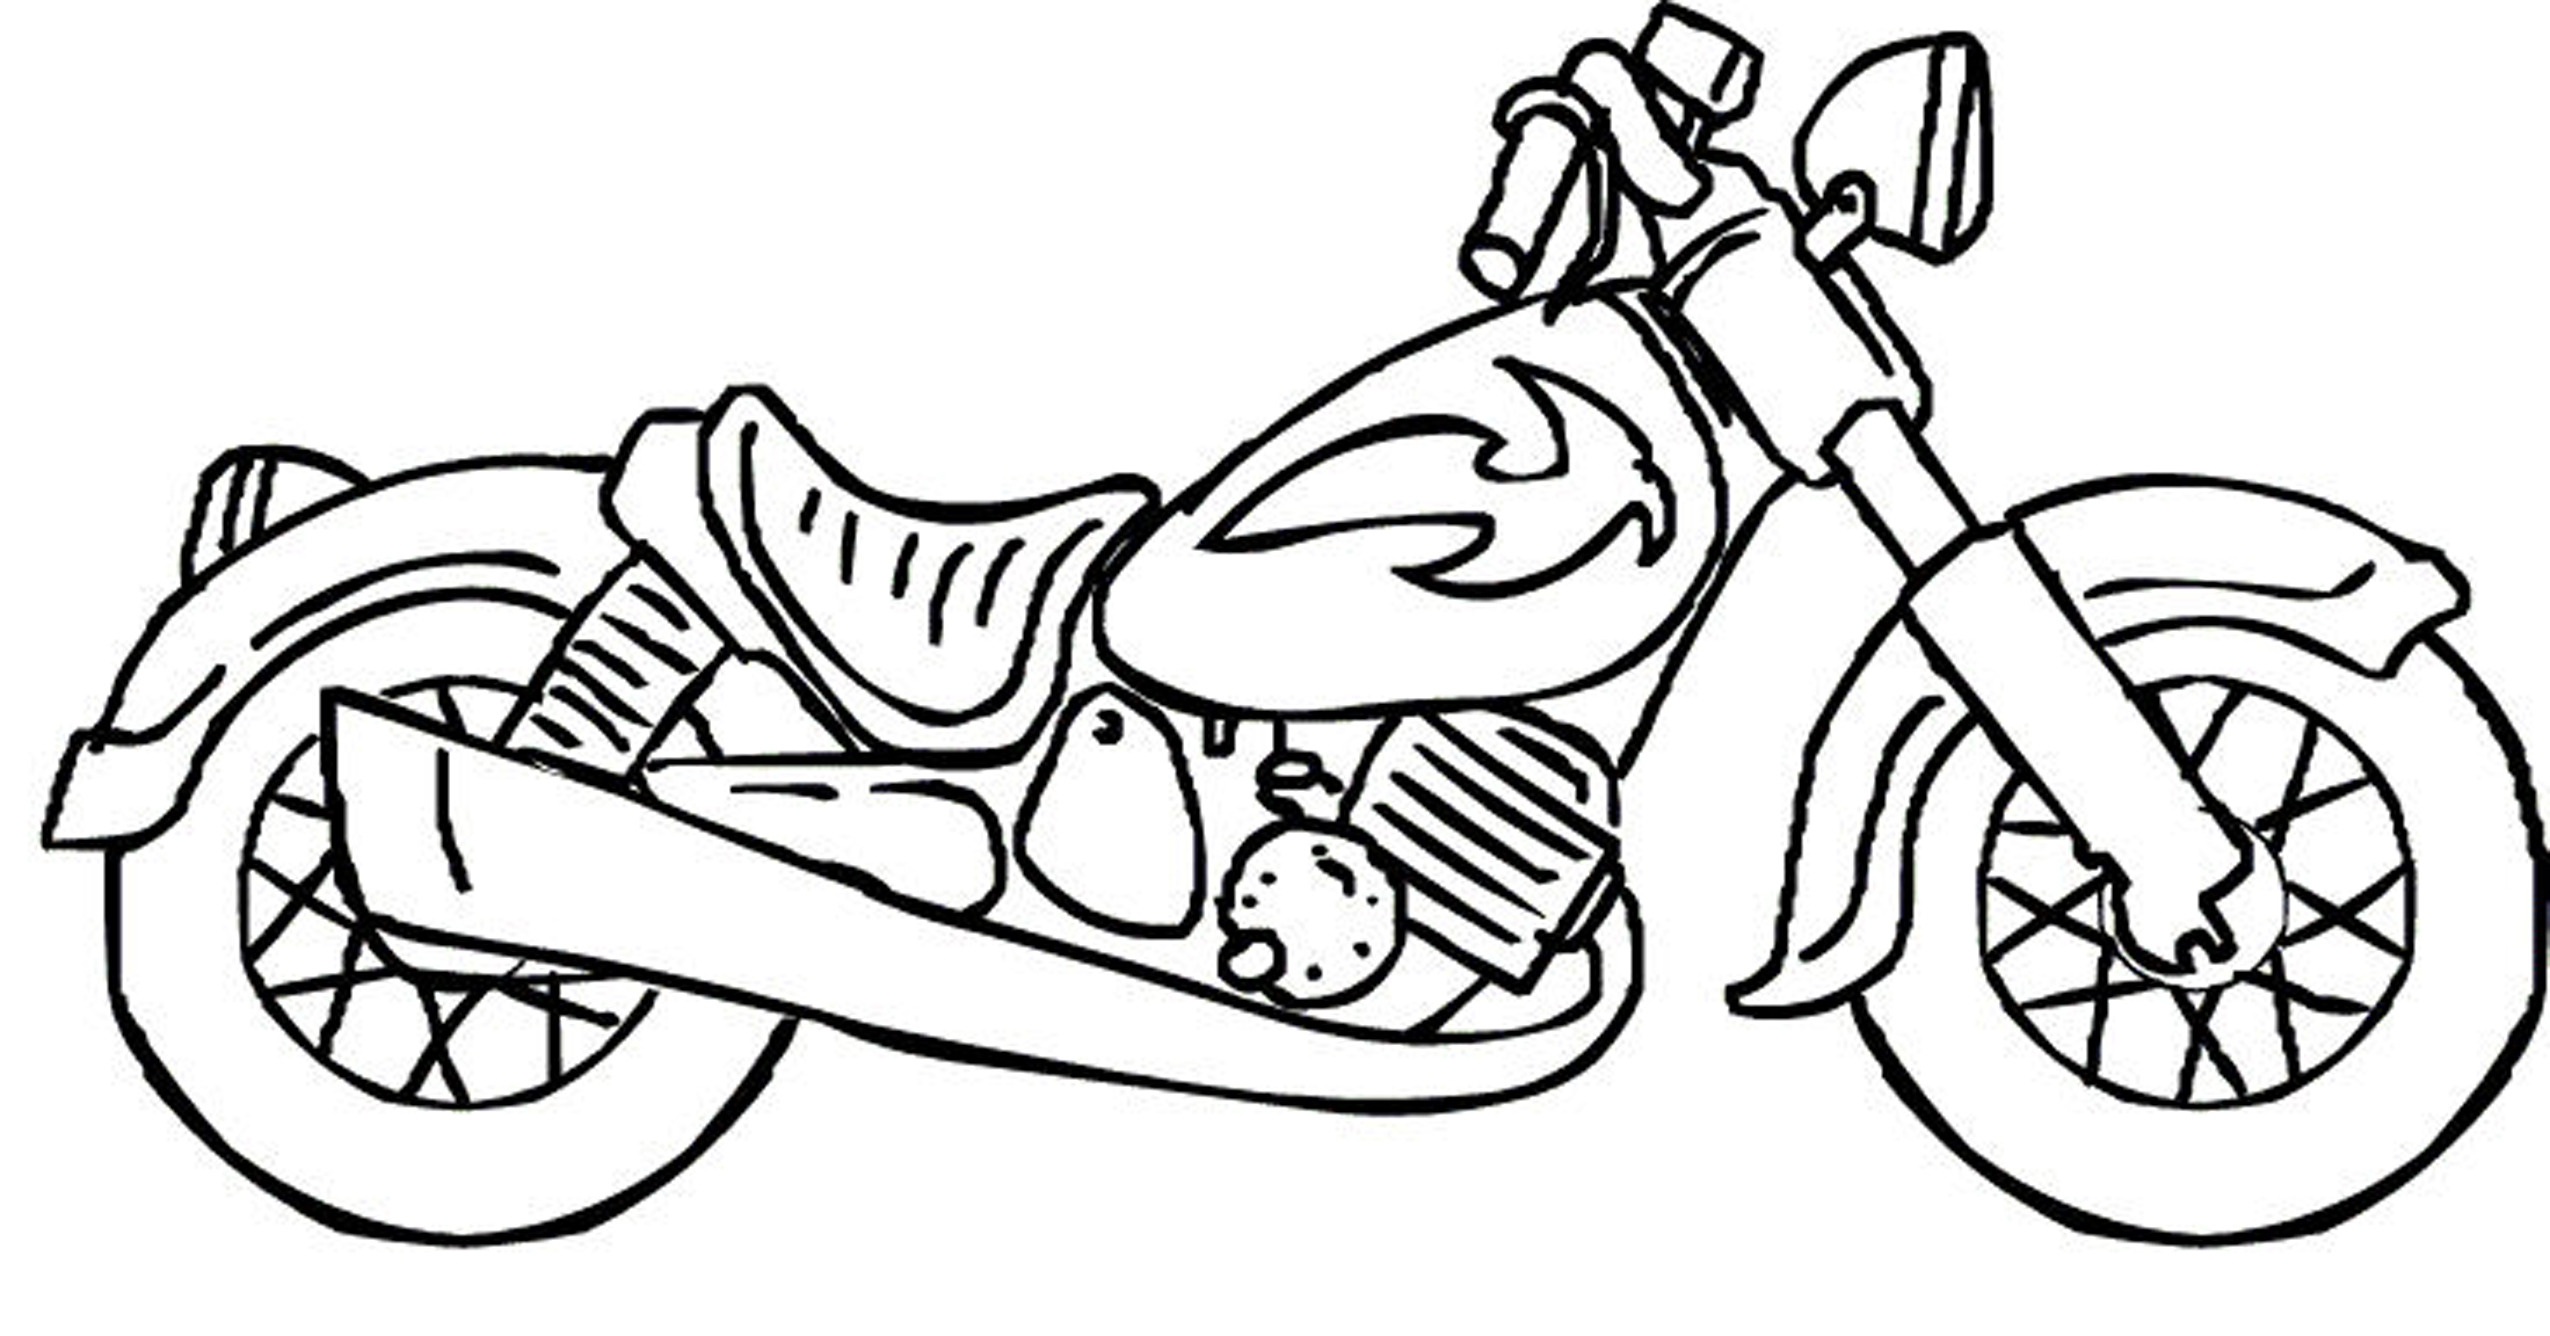 2550x1336 Just Arrived Motorcycle Coloring Pages Best Pictures To Color 15